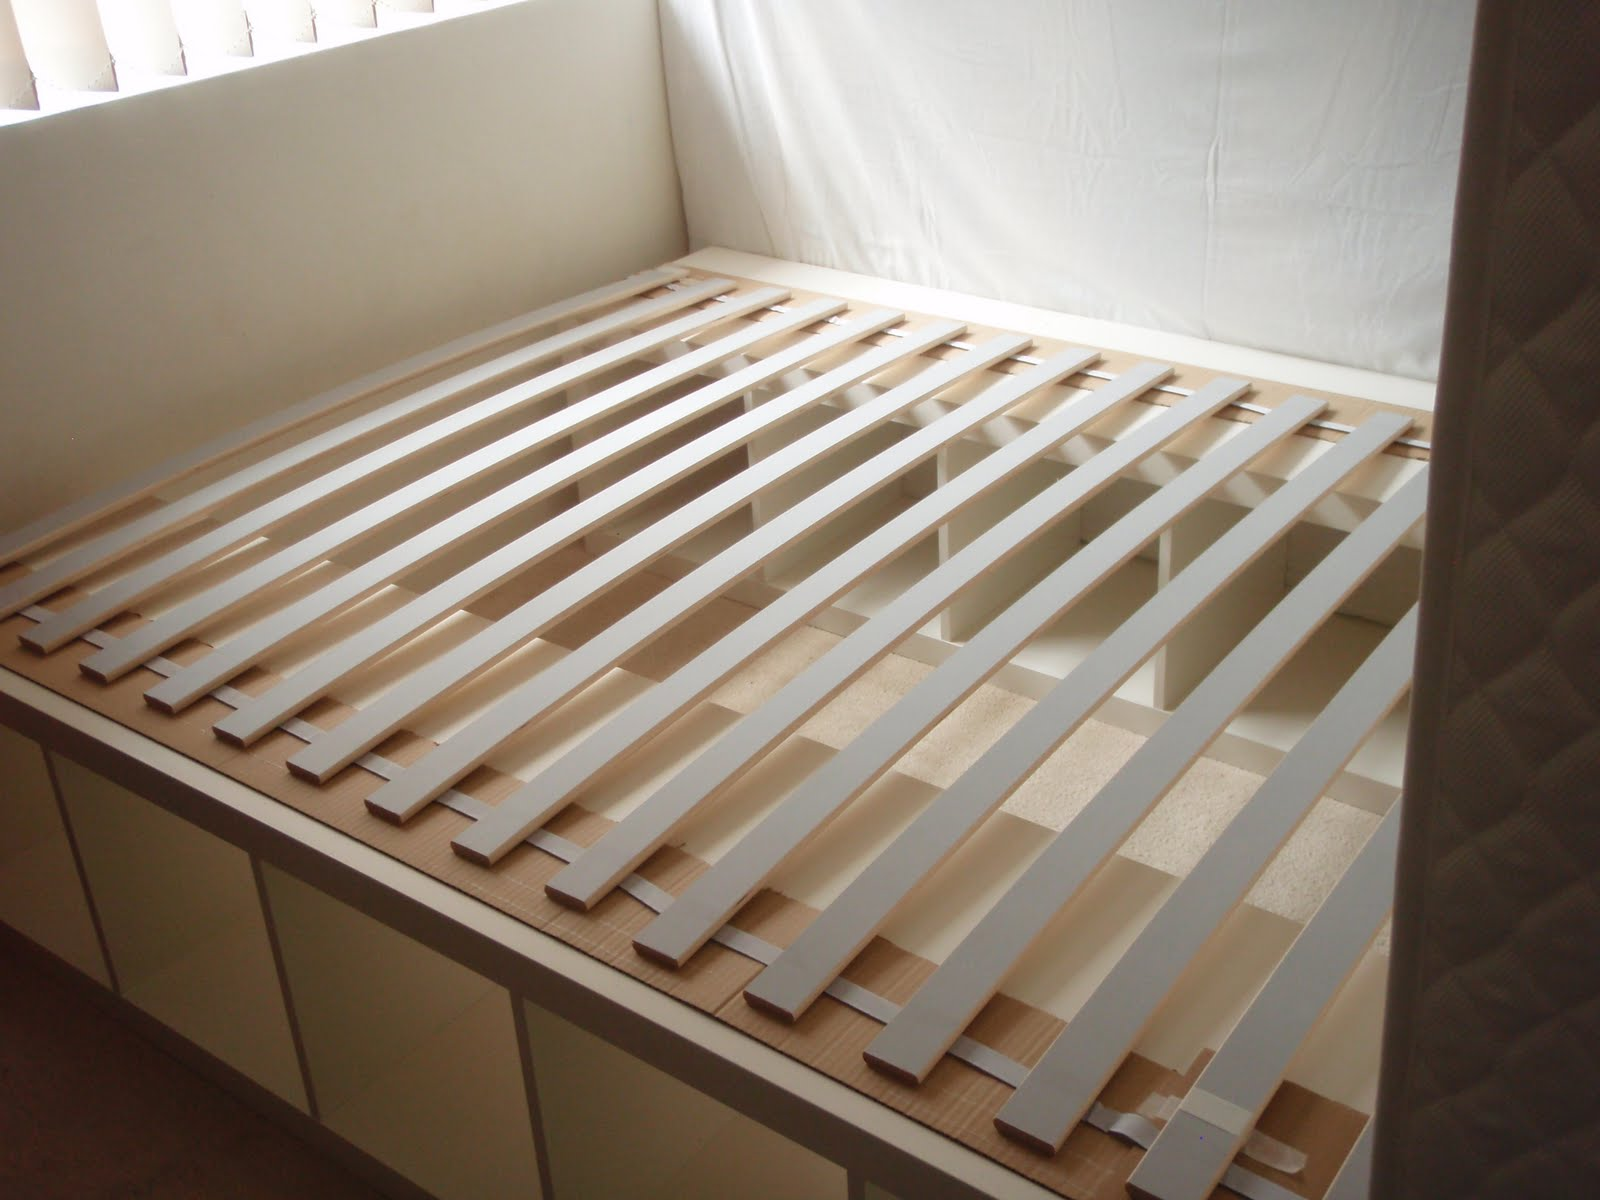 Expedit re purposed as bed frame for maximum storage IKEA Hackers